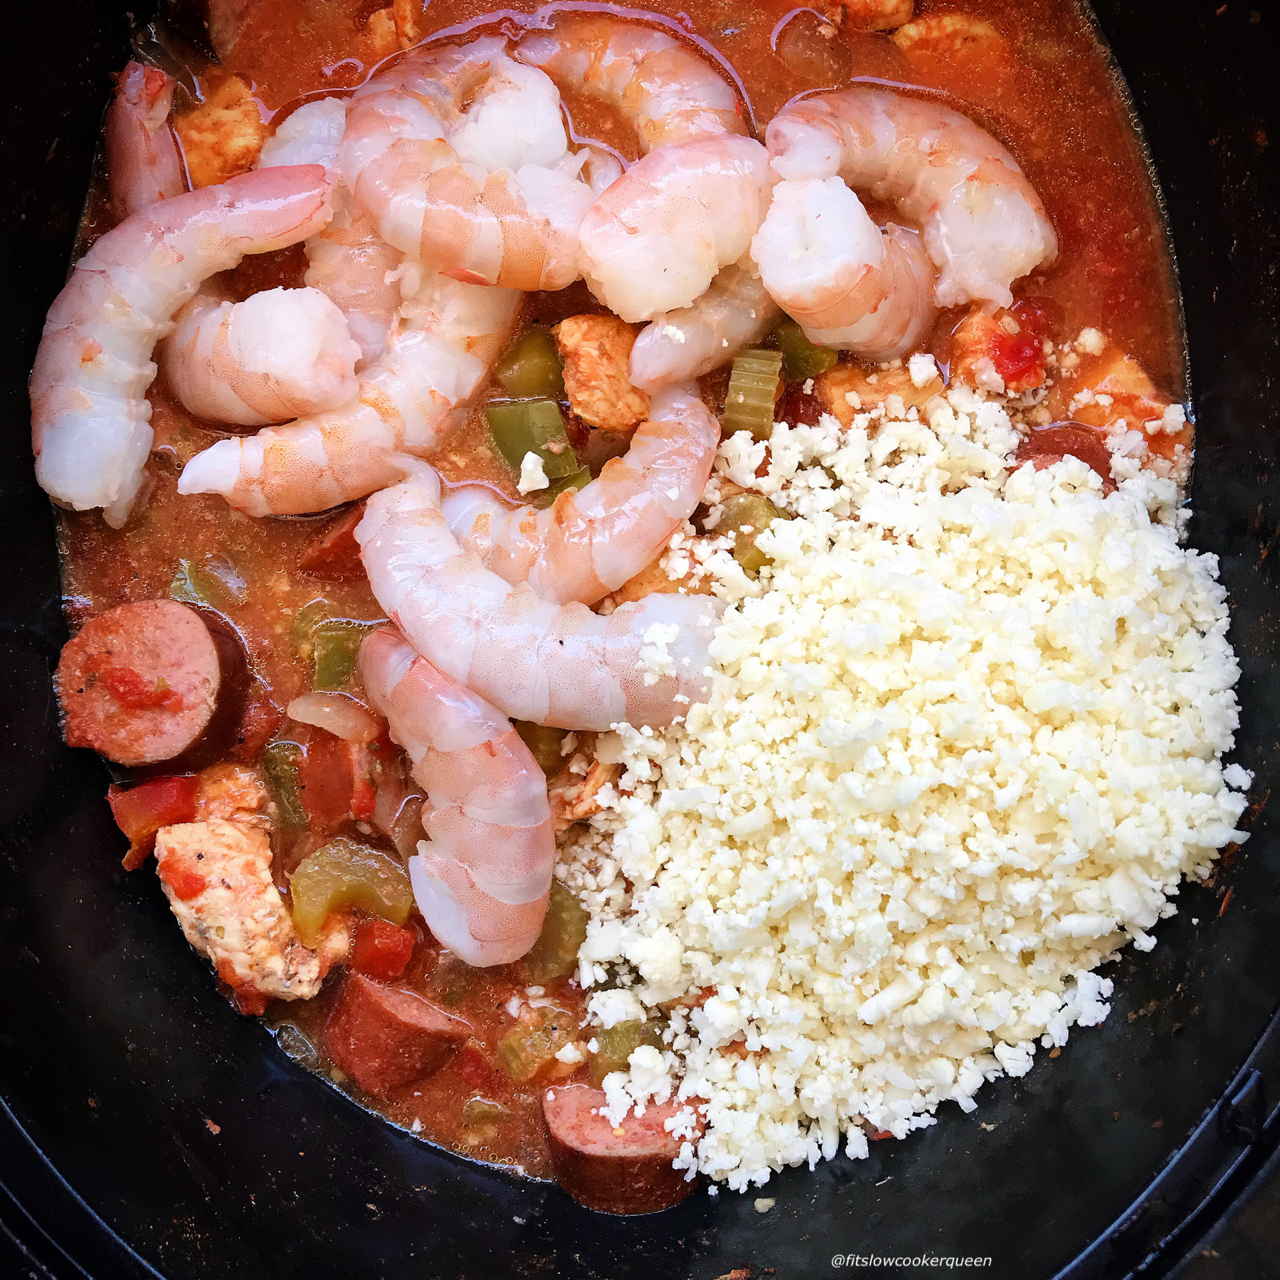 Packed with Creole and Cajun flavors, this easy slow cooker jambalaya recipe uses cauliflower rice to make it low-carb, whole30, and paleo.